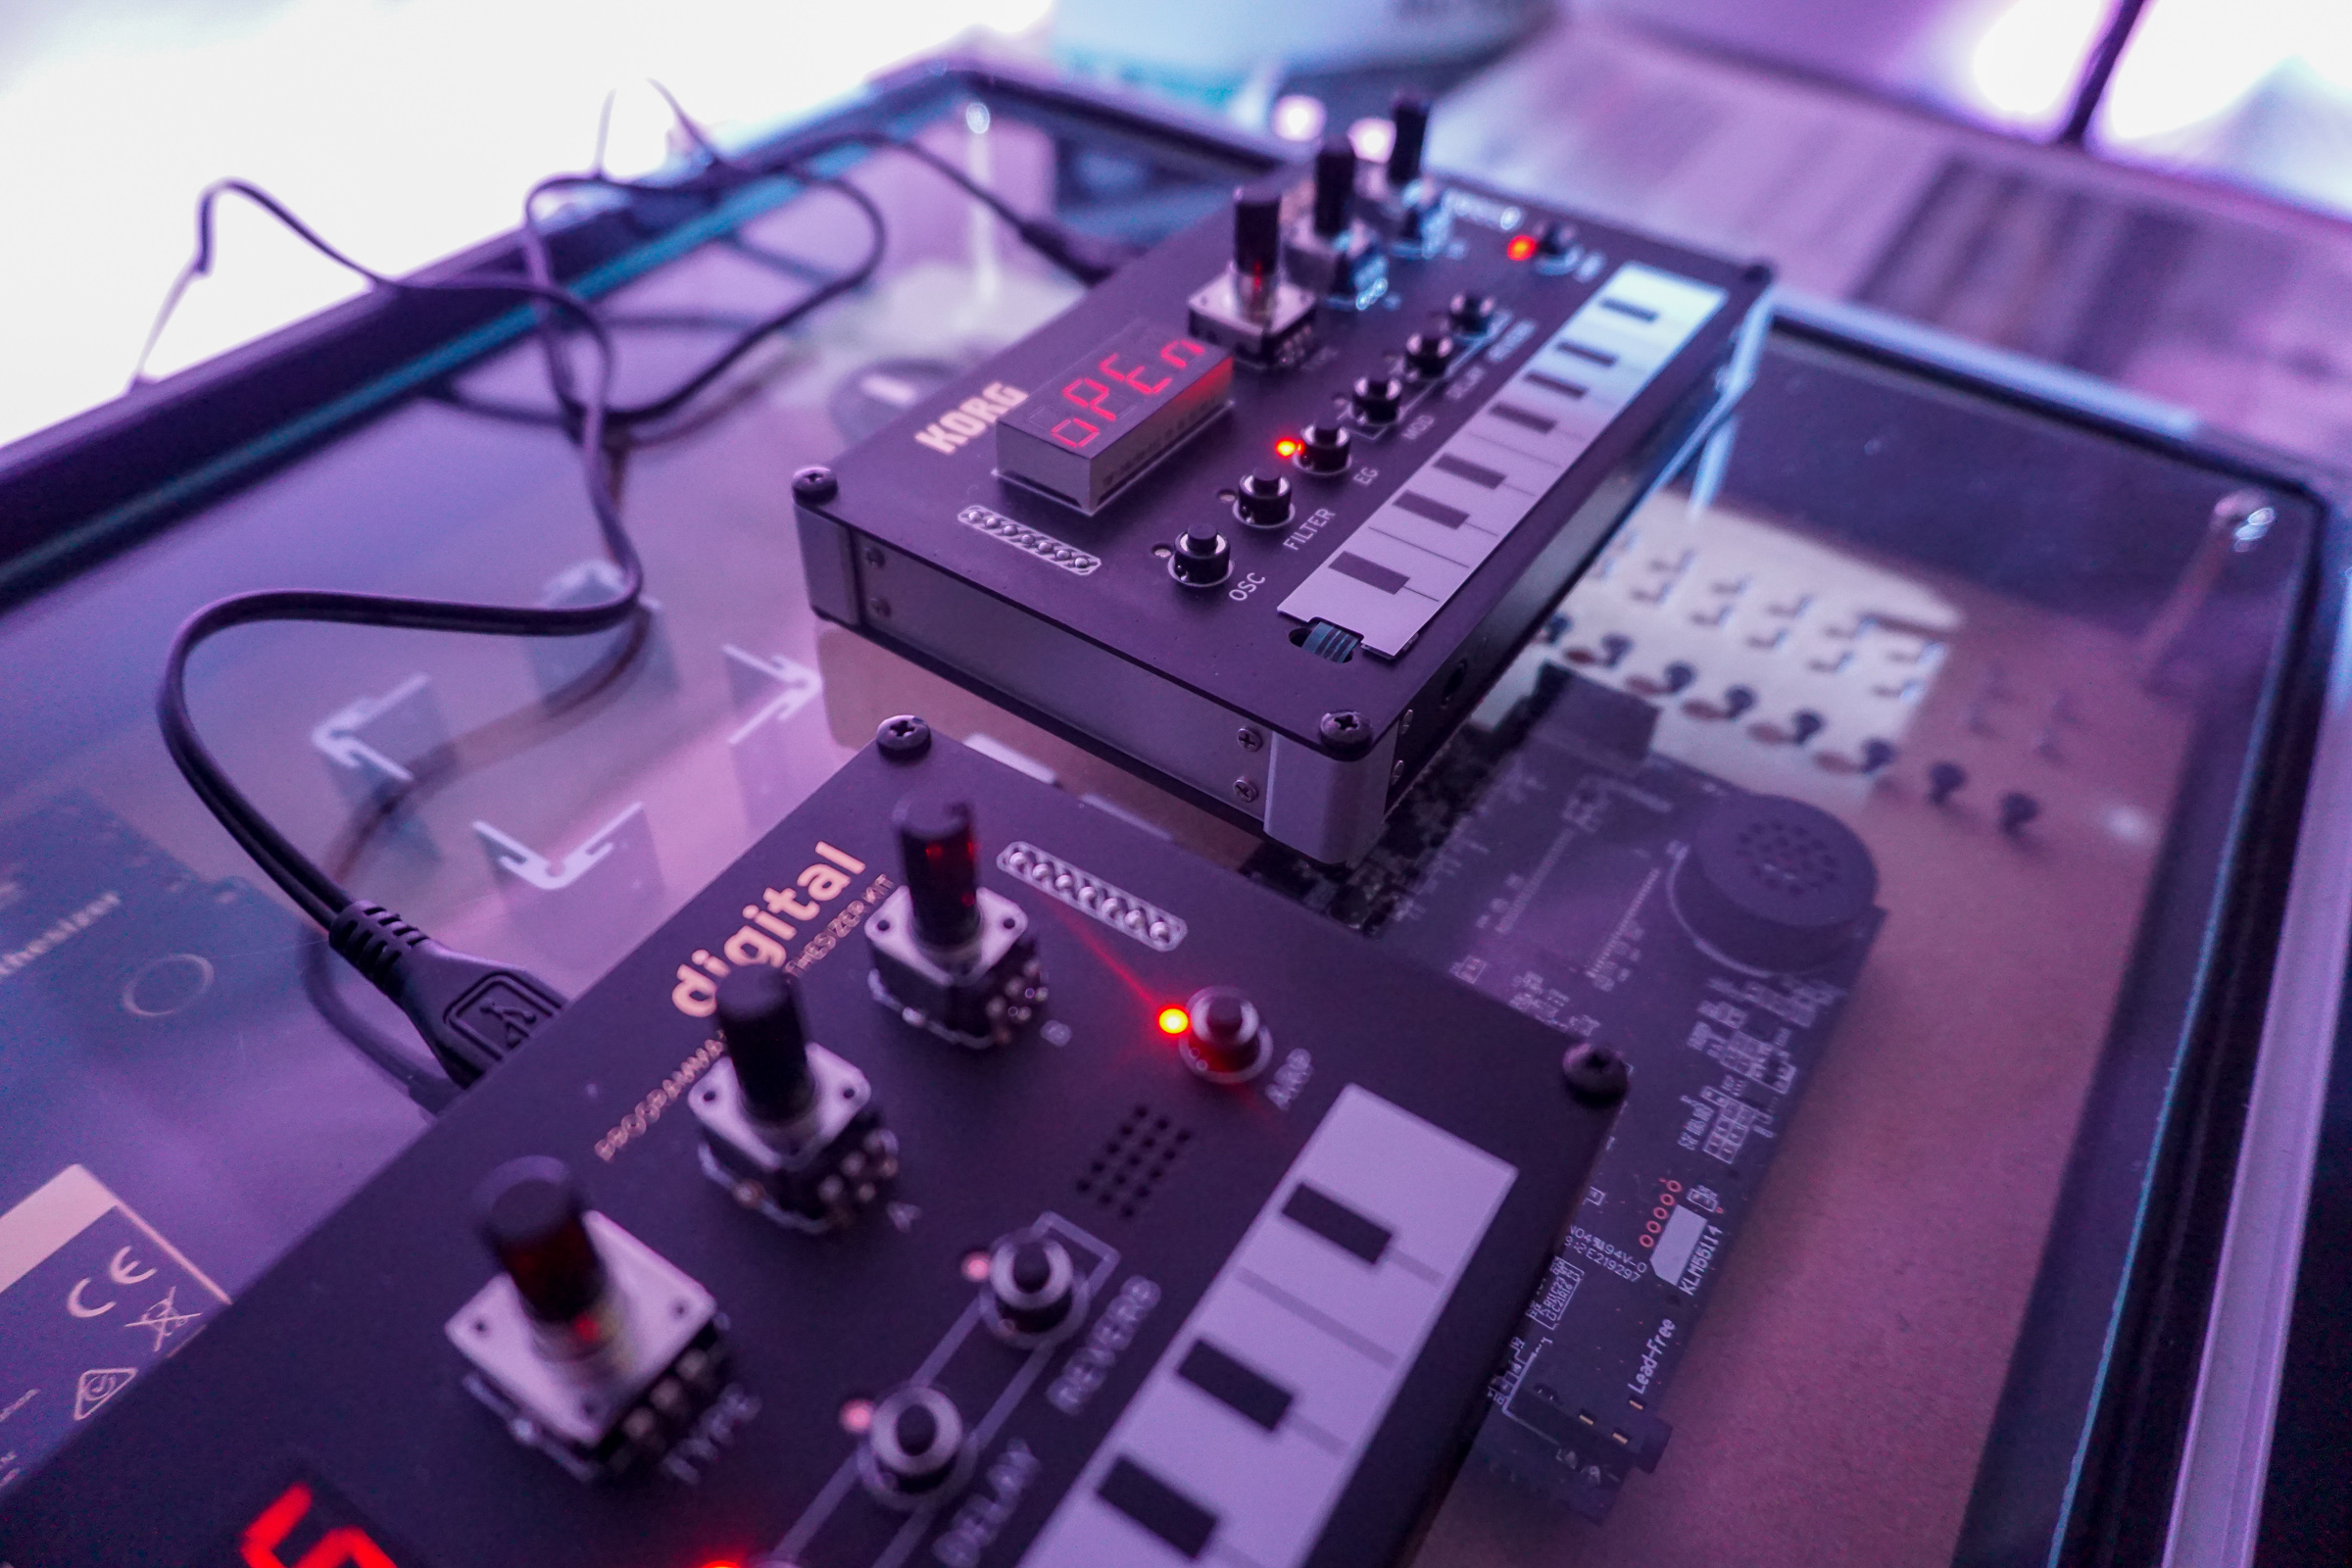 KORG's nutekt NTS-1 is a fun, little kit - and open to